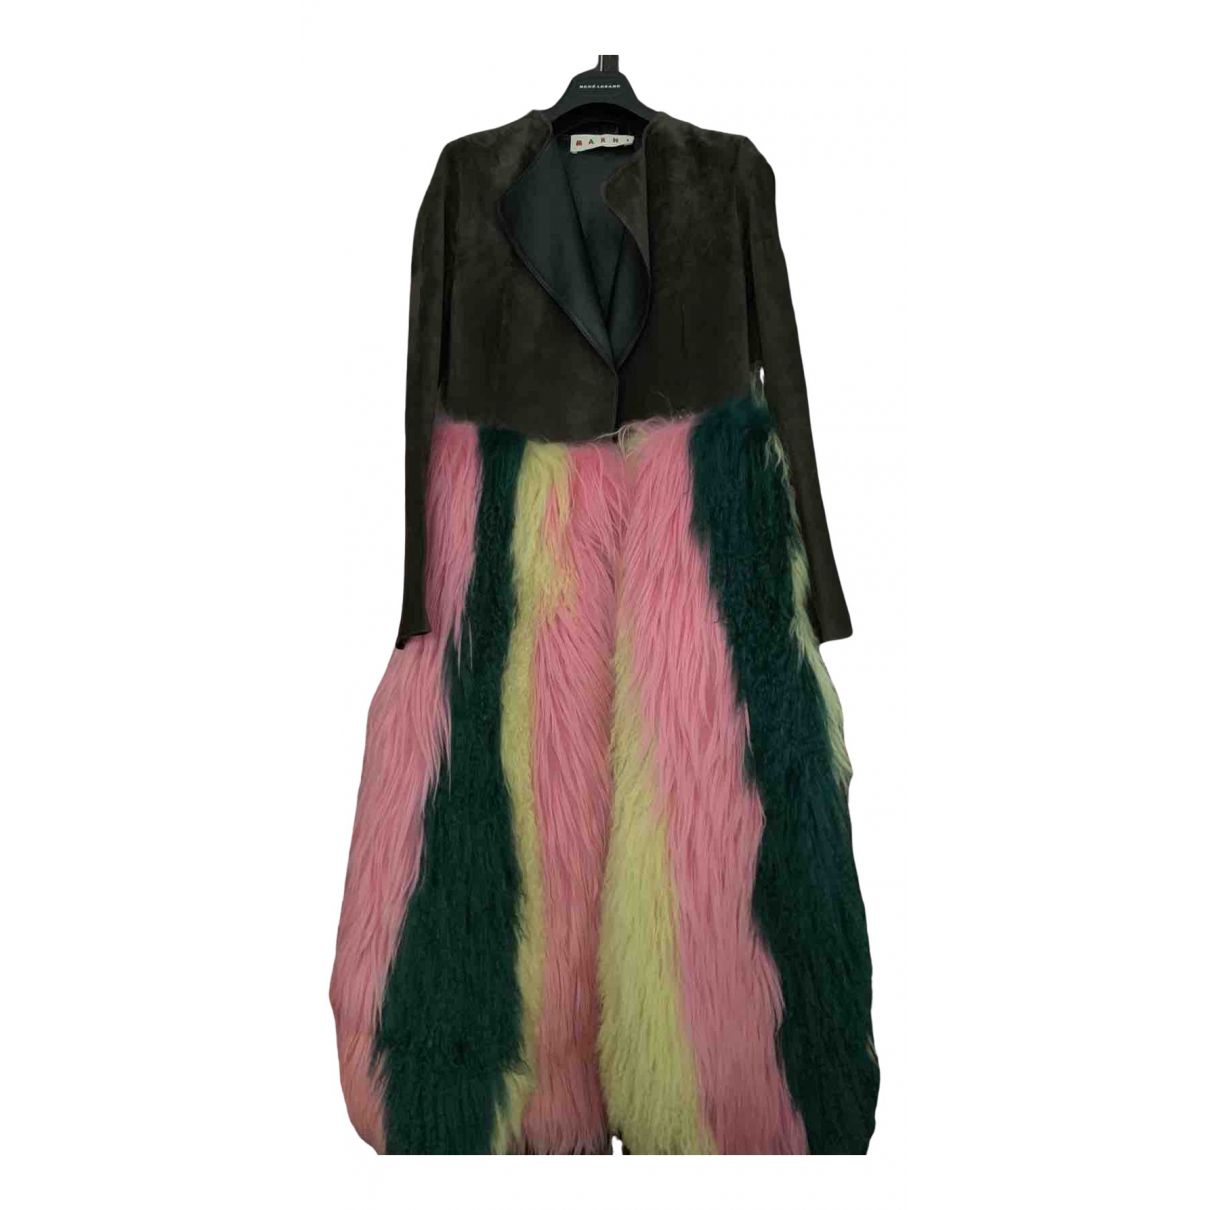 Marni \N Multicolour Leather coat for Women 38 IT